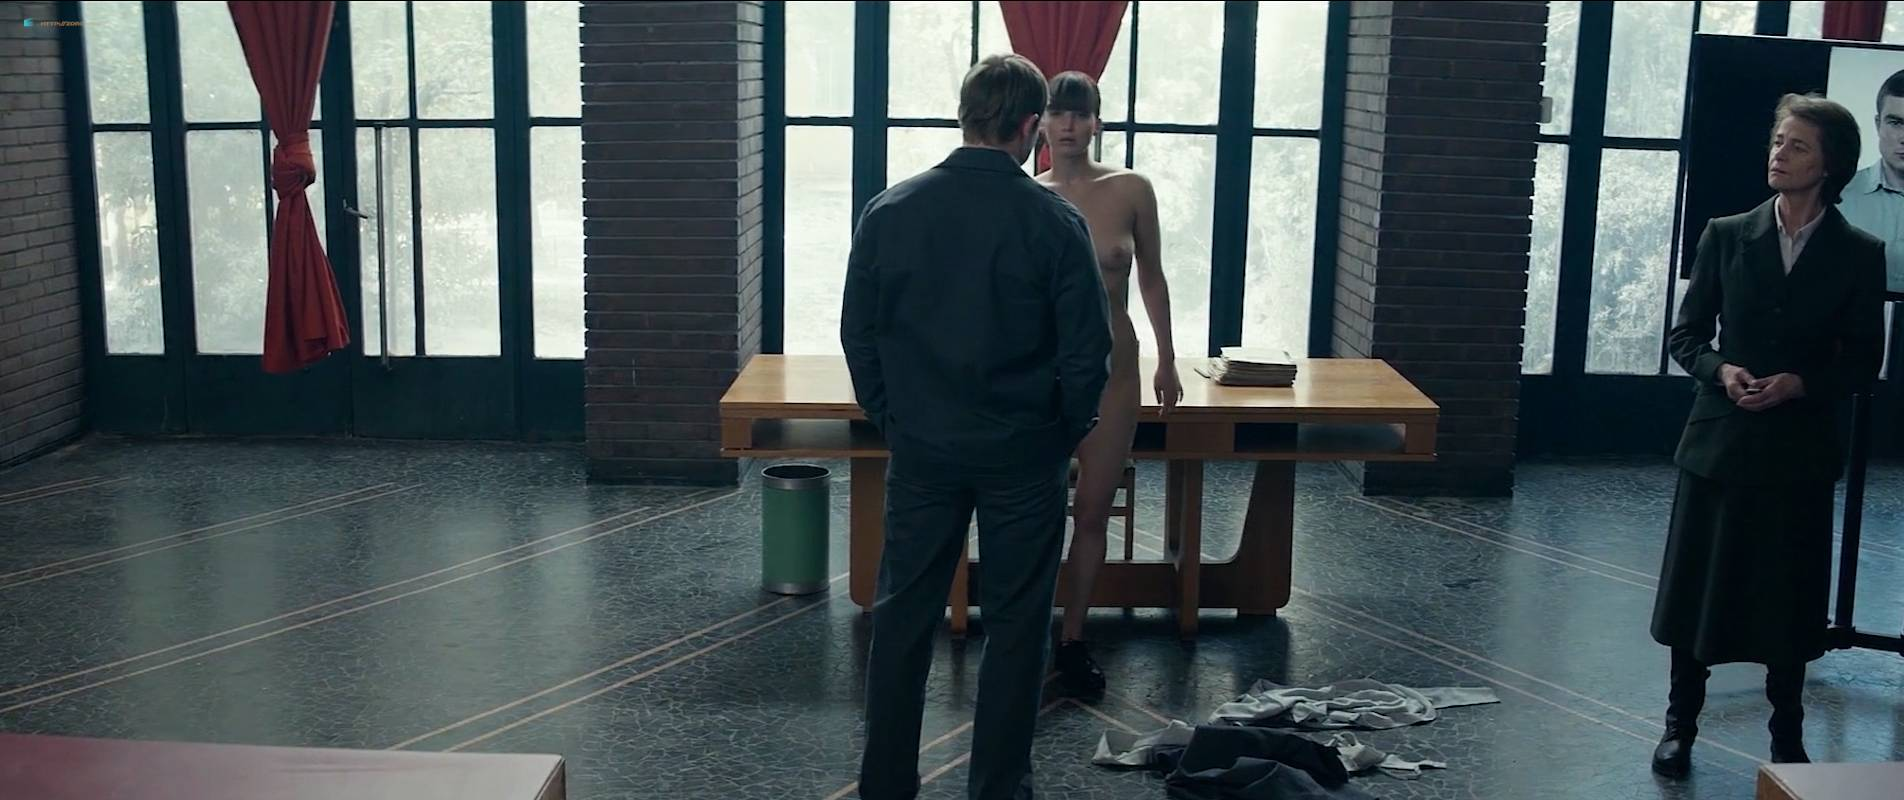 Jennifer-Lawrence-nude-topless-and-butt-Red-Sparrow-2018-HD-1080p-Web-010.jpg